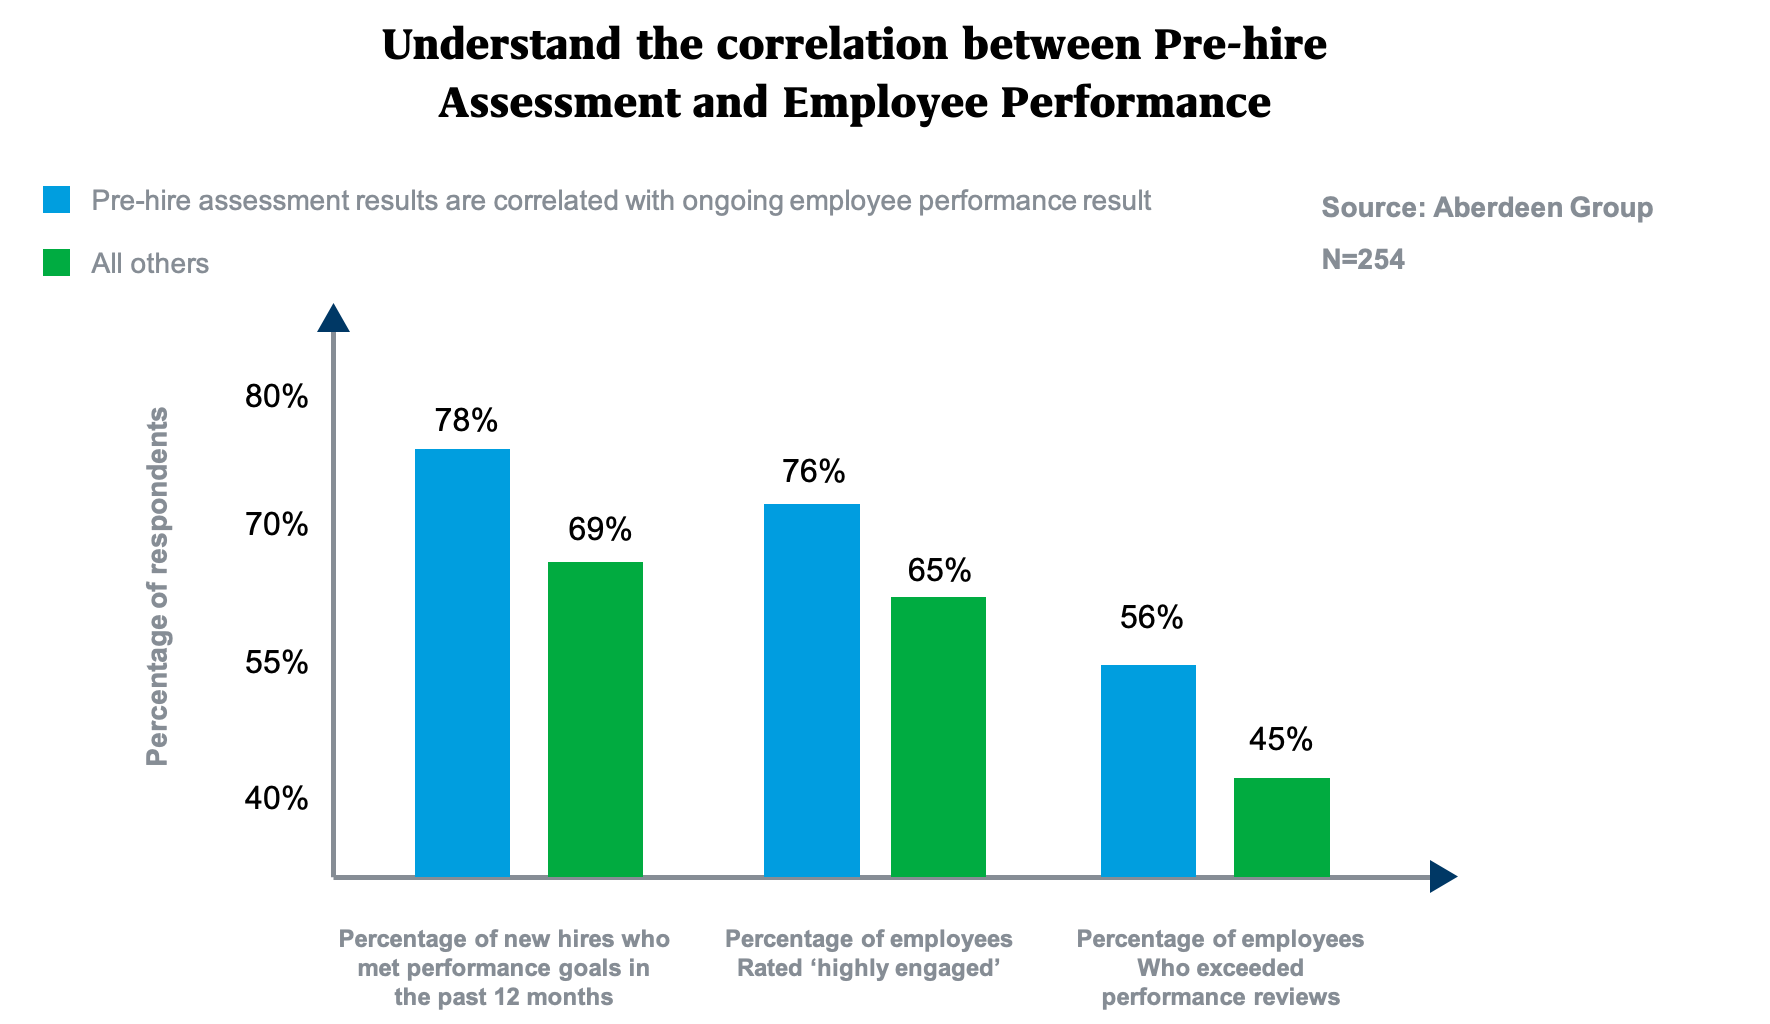 understanding_the_correlation_between_pre_hire_assessments_and_employee_performance